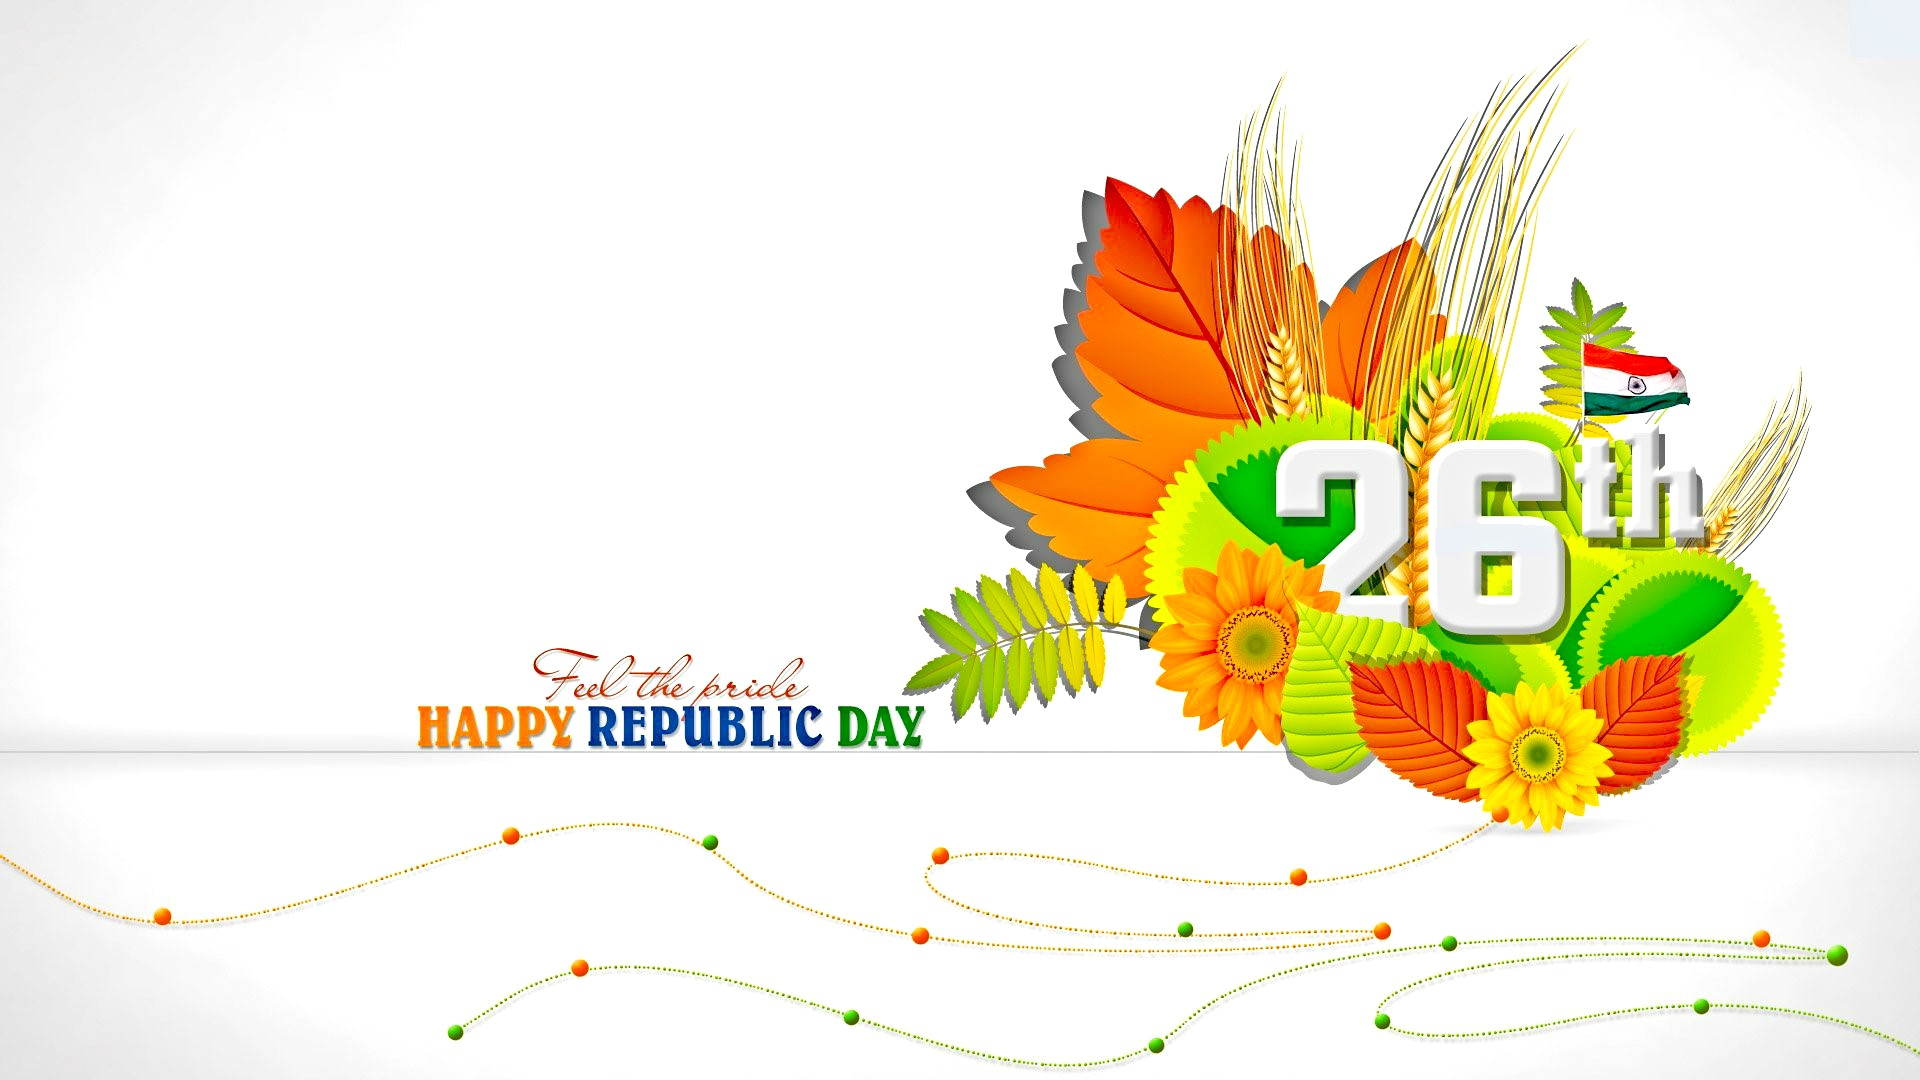 republic day 2018 29 images wishes essay for students republic day is celebrated to commemorate the efforts of constitution makers who ensured the smooth gradual conversion of into a constitutional